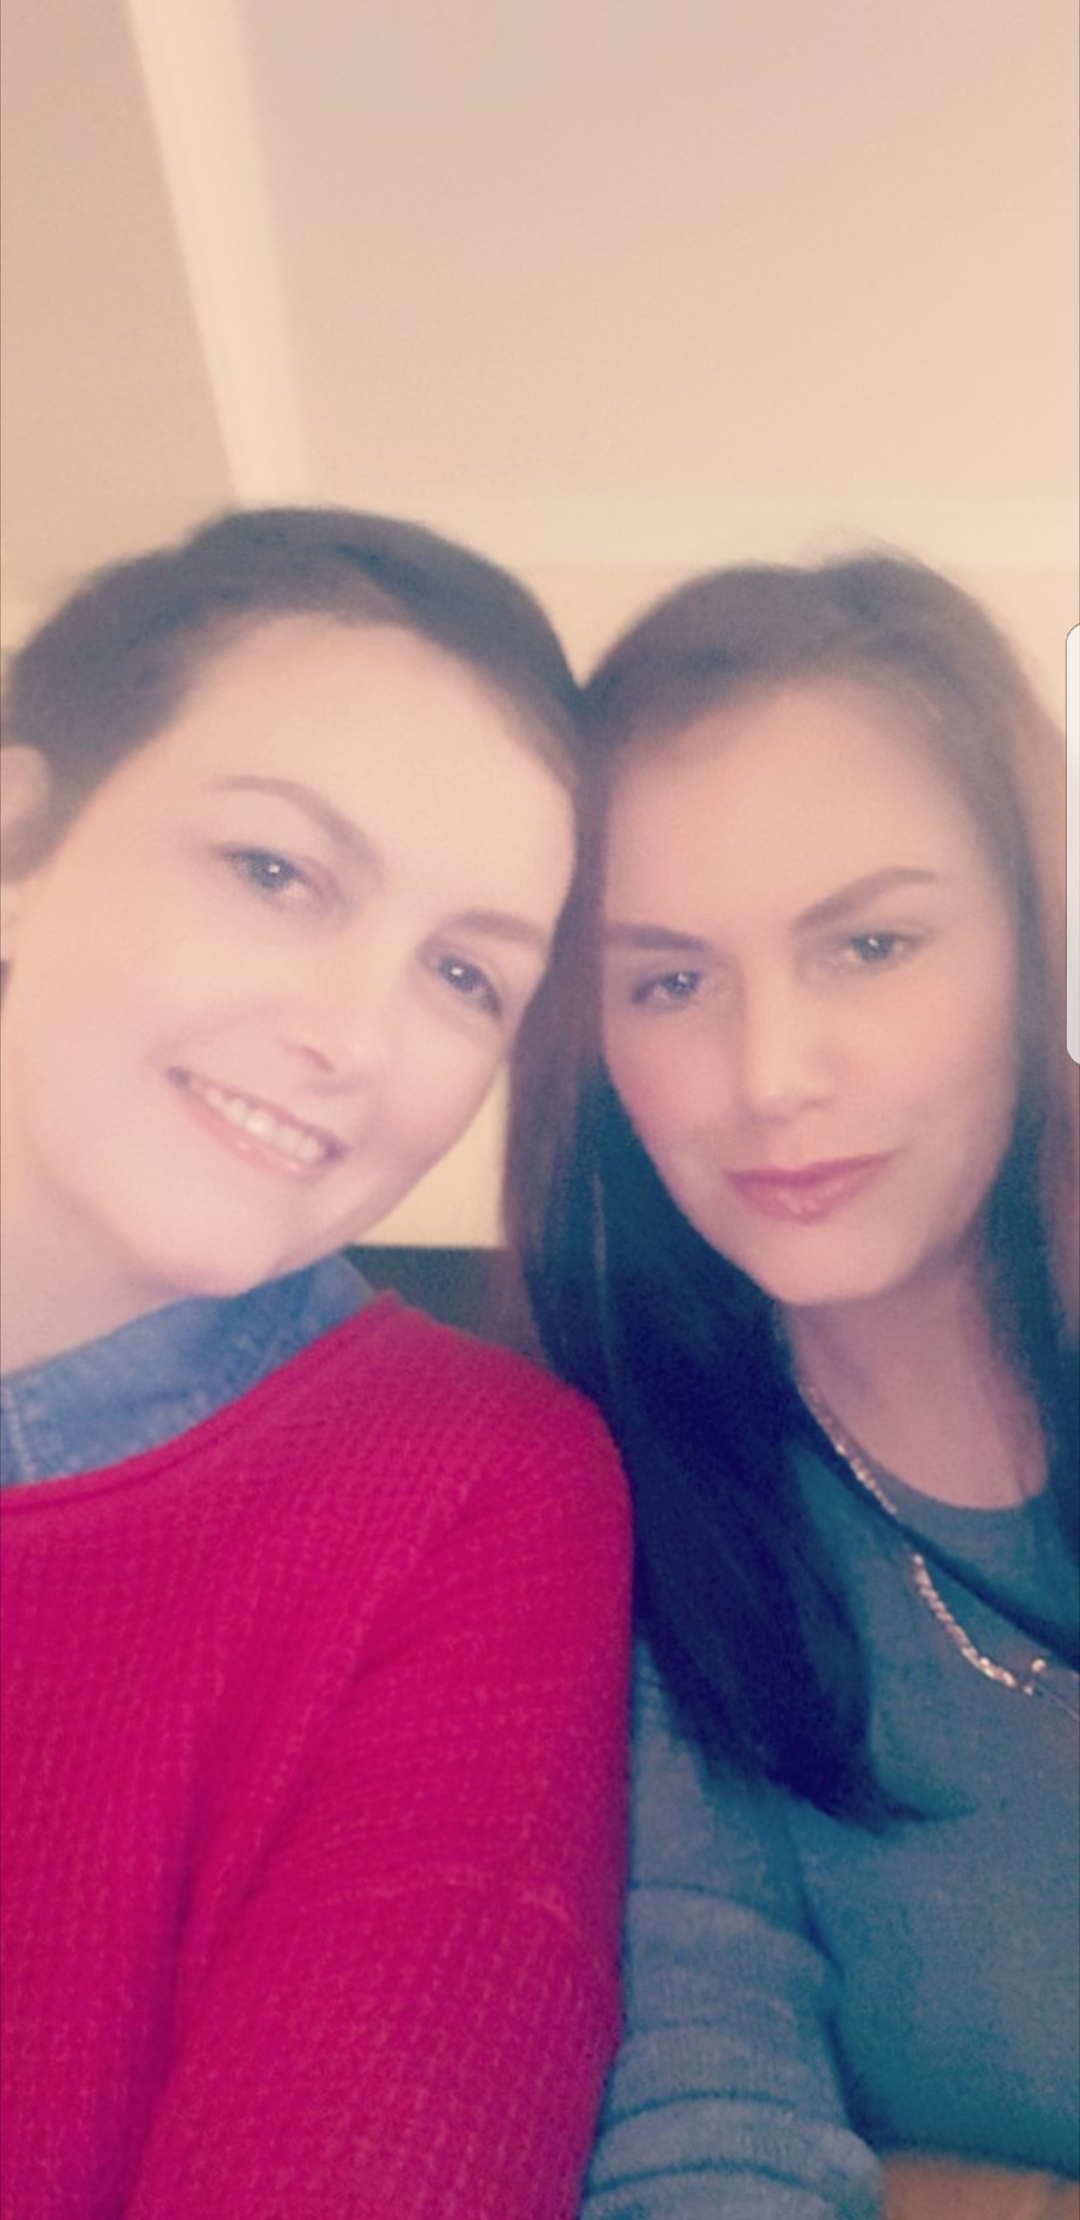 Heartbroken sister vows to make sure Leighanne Sanderson's memory lives on